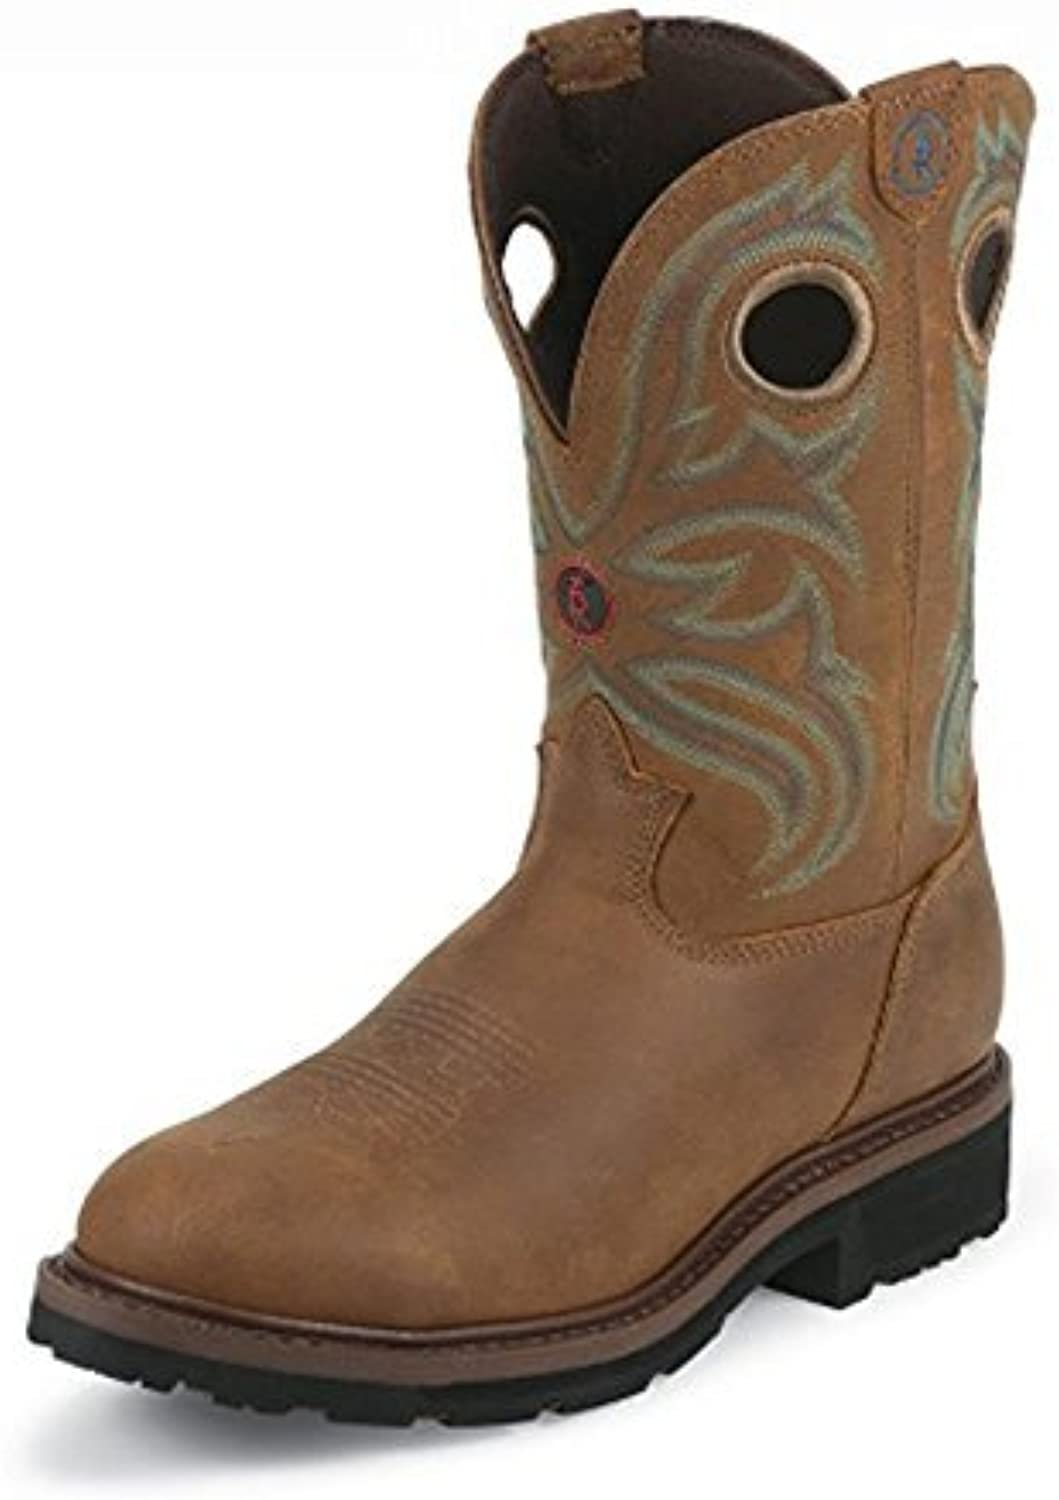 Tony Lama Men's Snyder Brown 11  Height (RR3206)   Foot TAN Cheyenne Buffalo   Pullon Western Boots   Brown Cowboy Leather Boot   Handcrafted in The USA